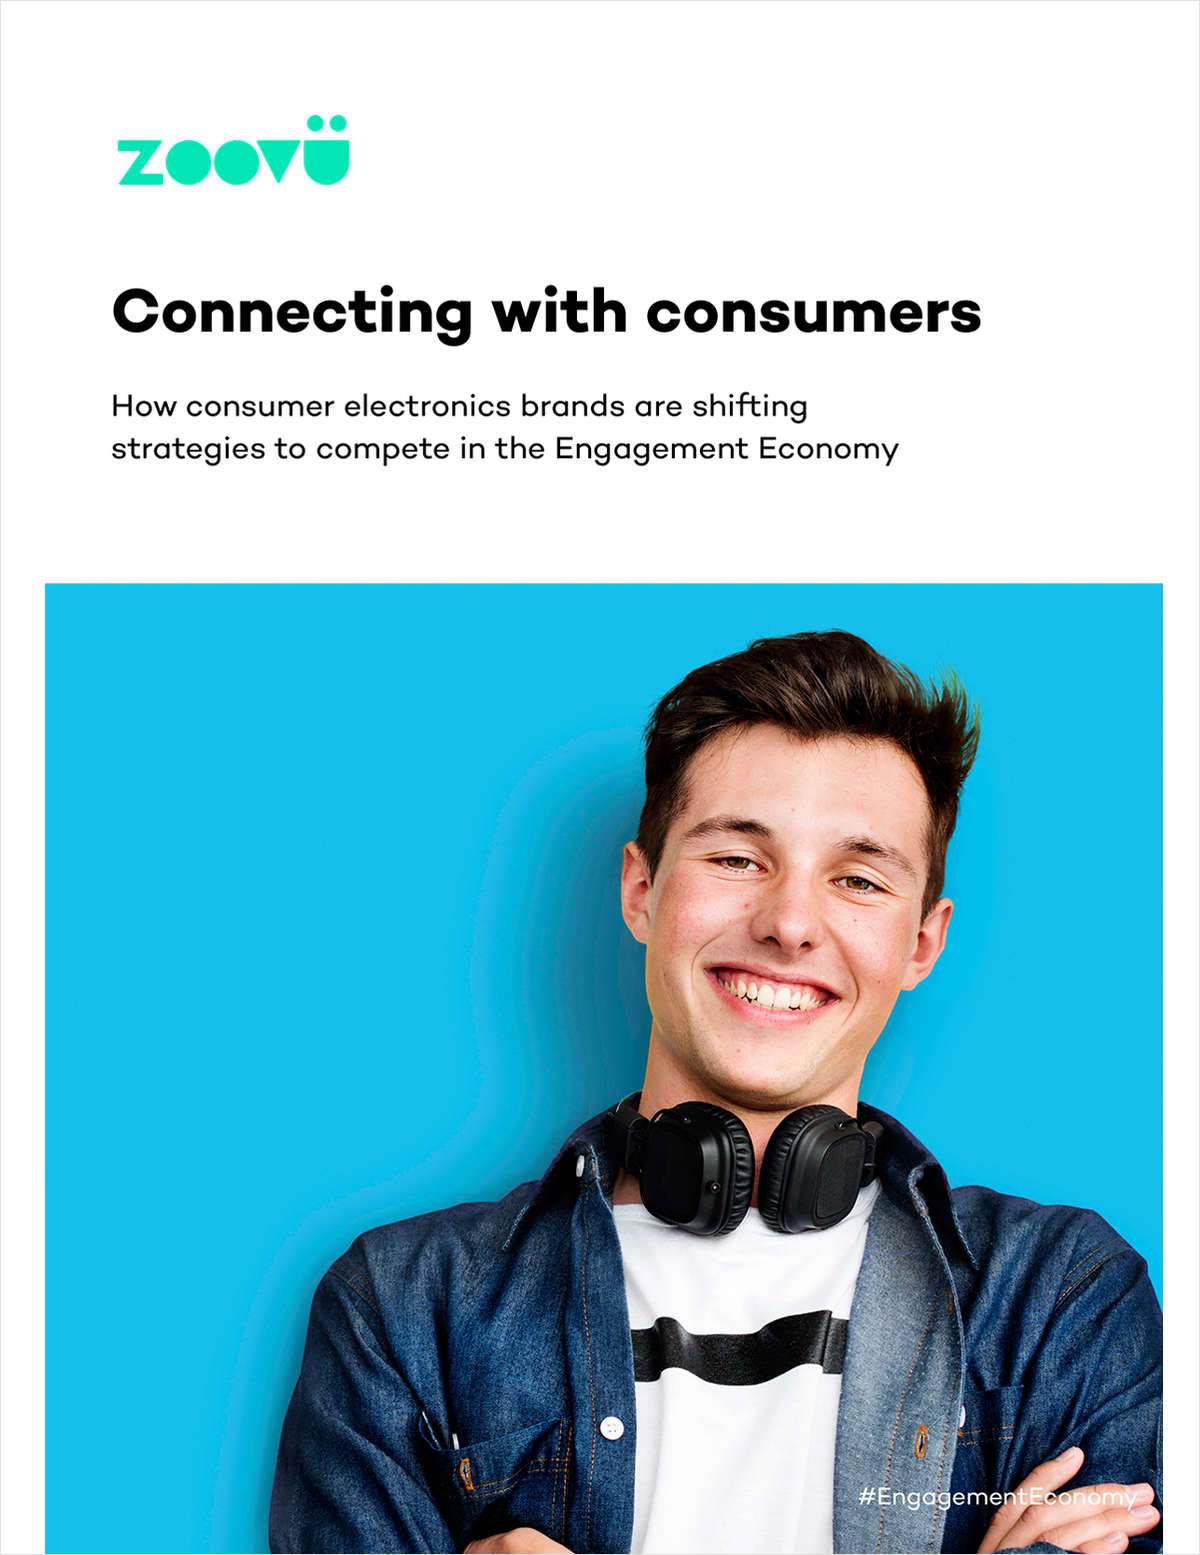 How Consumer Electronics Brands Are Shifting Strategies to Compete in The Engagement Economy